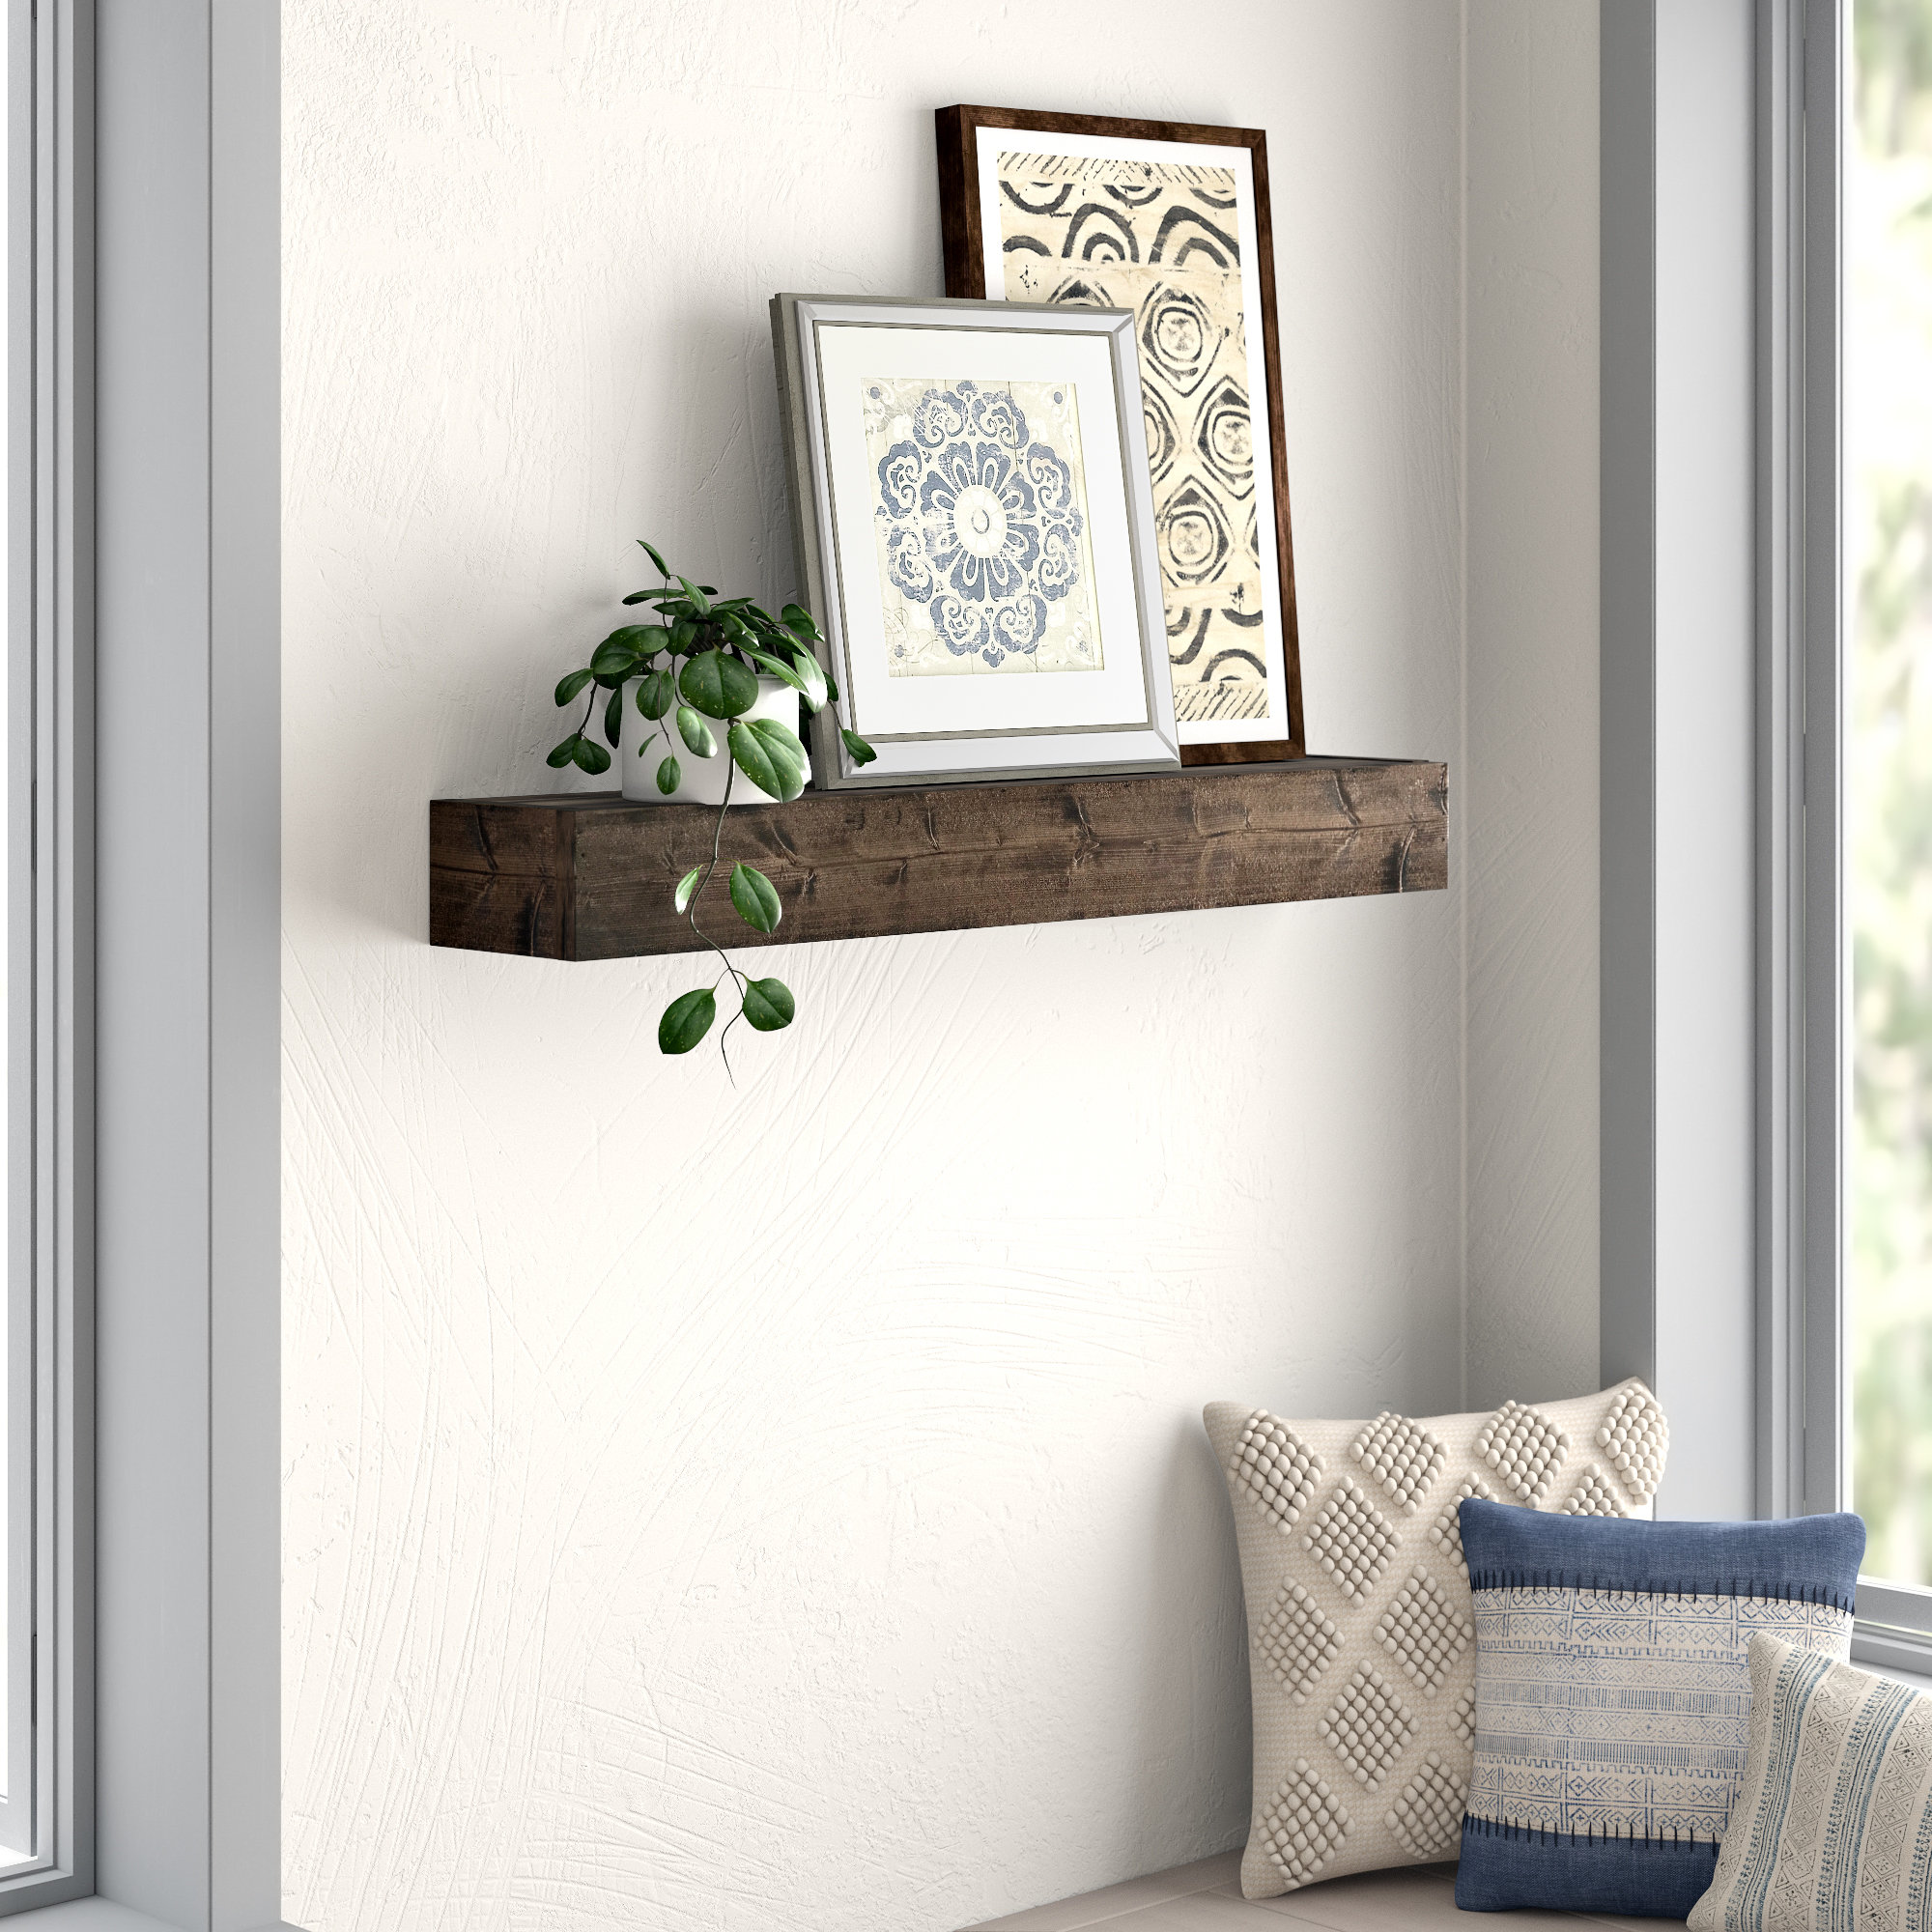 mistana kaydence wood floating shelf reviews living room shelves tures wall boxes hang artwork without nails best shoes for standing upper cabinet design ikea bookcase shoe